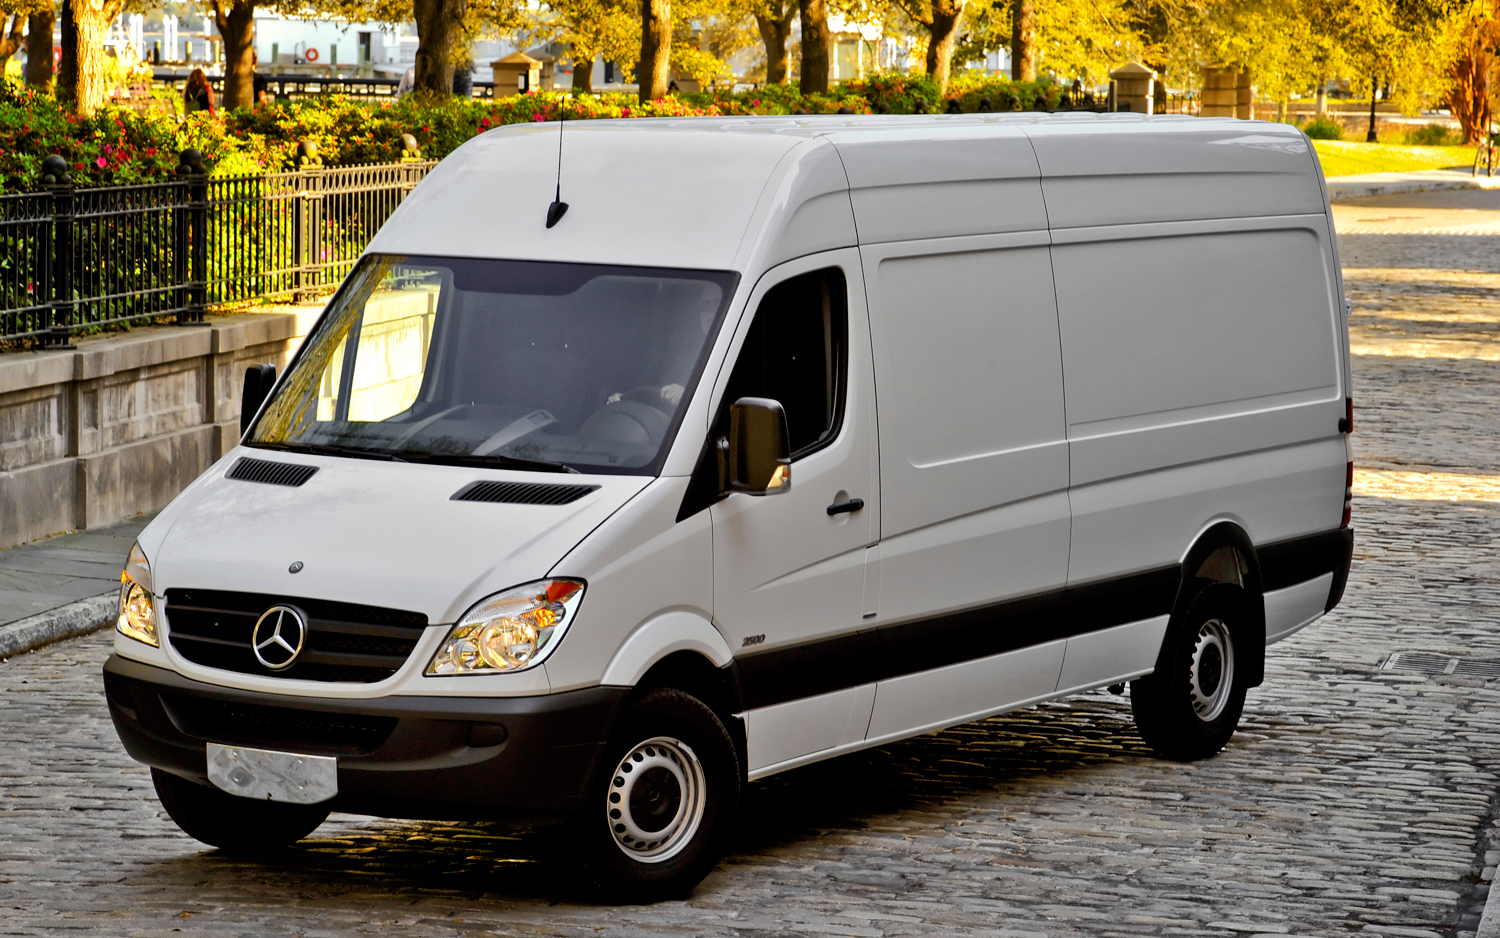 Mercedes-Benz Sprinter 224 2010 photo - 12